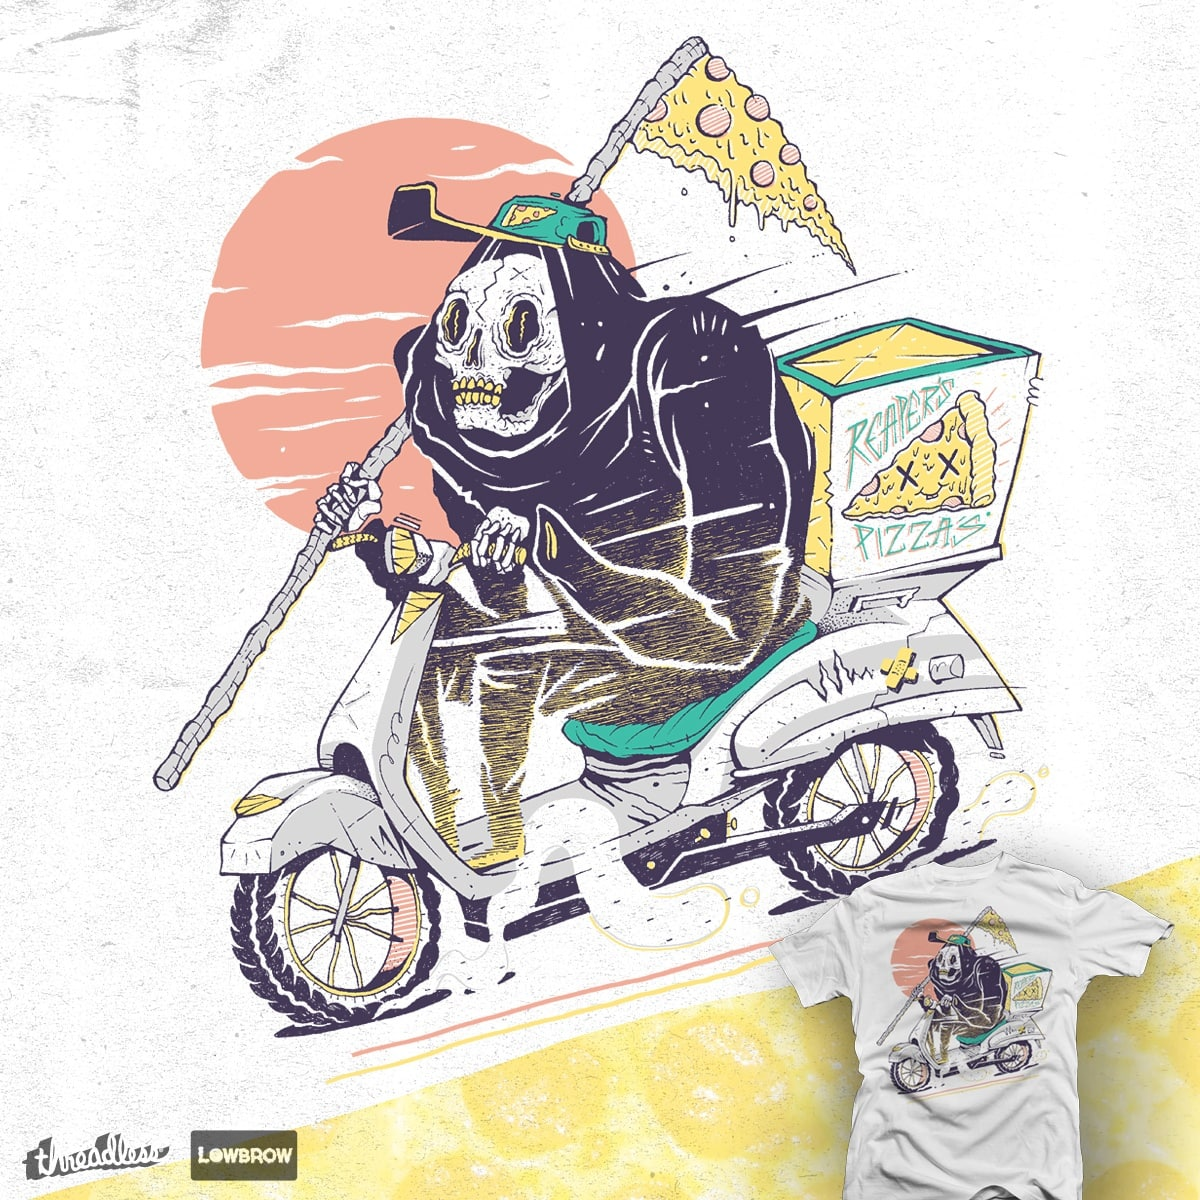 Reaper's Pizza by citizen rifferson on Threadless